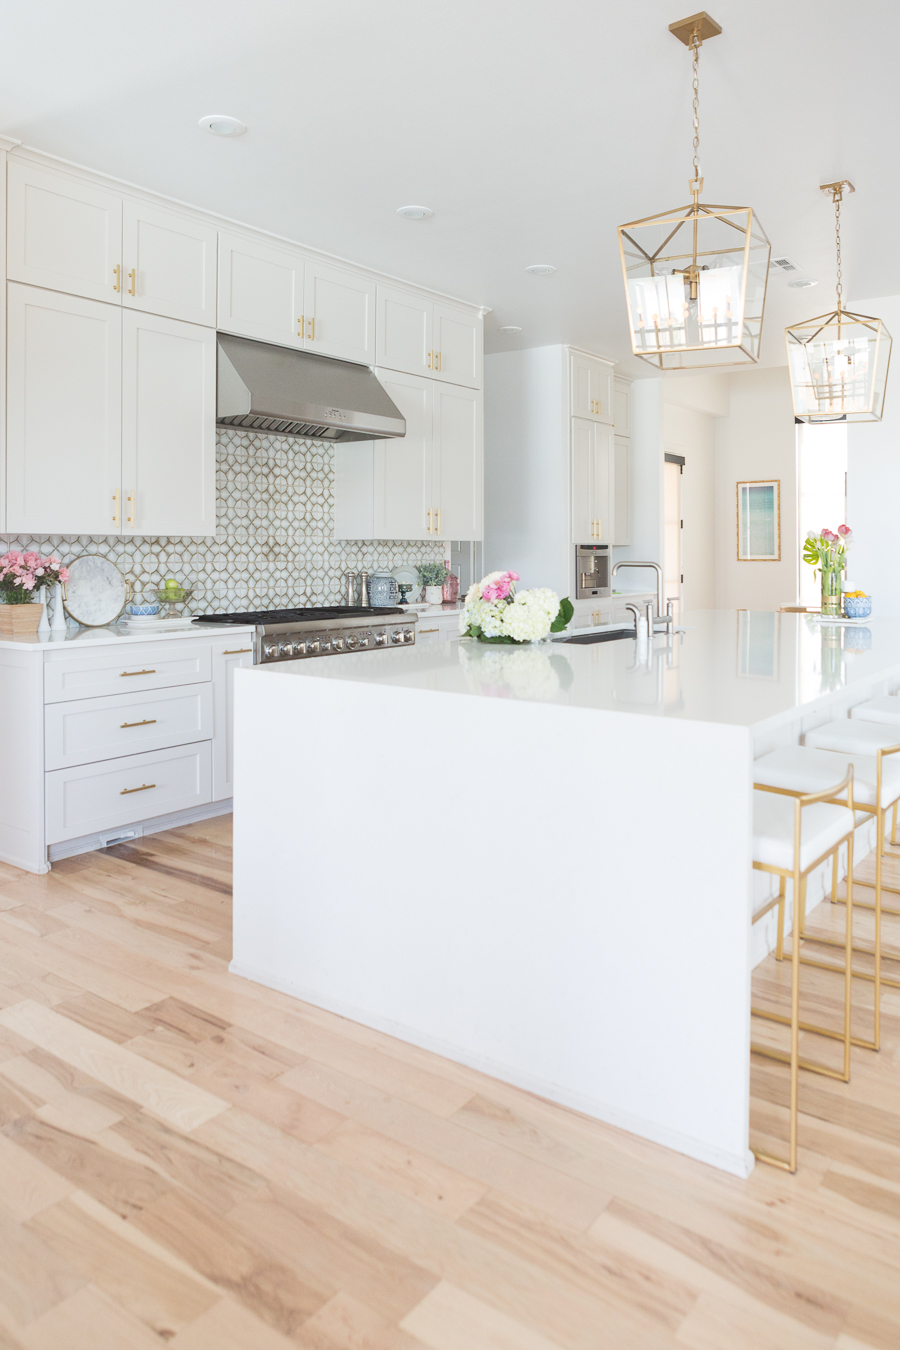 Home and Fashion Memorial Day Sales Weekend gold kitchen lanterns affordable gold bar stools large kitchen island quartz waterfall countertops gold hardware white kitchen cabinets patterned backsplash white kitchen